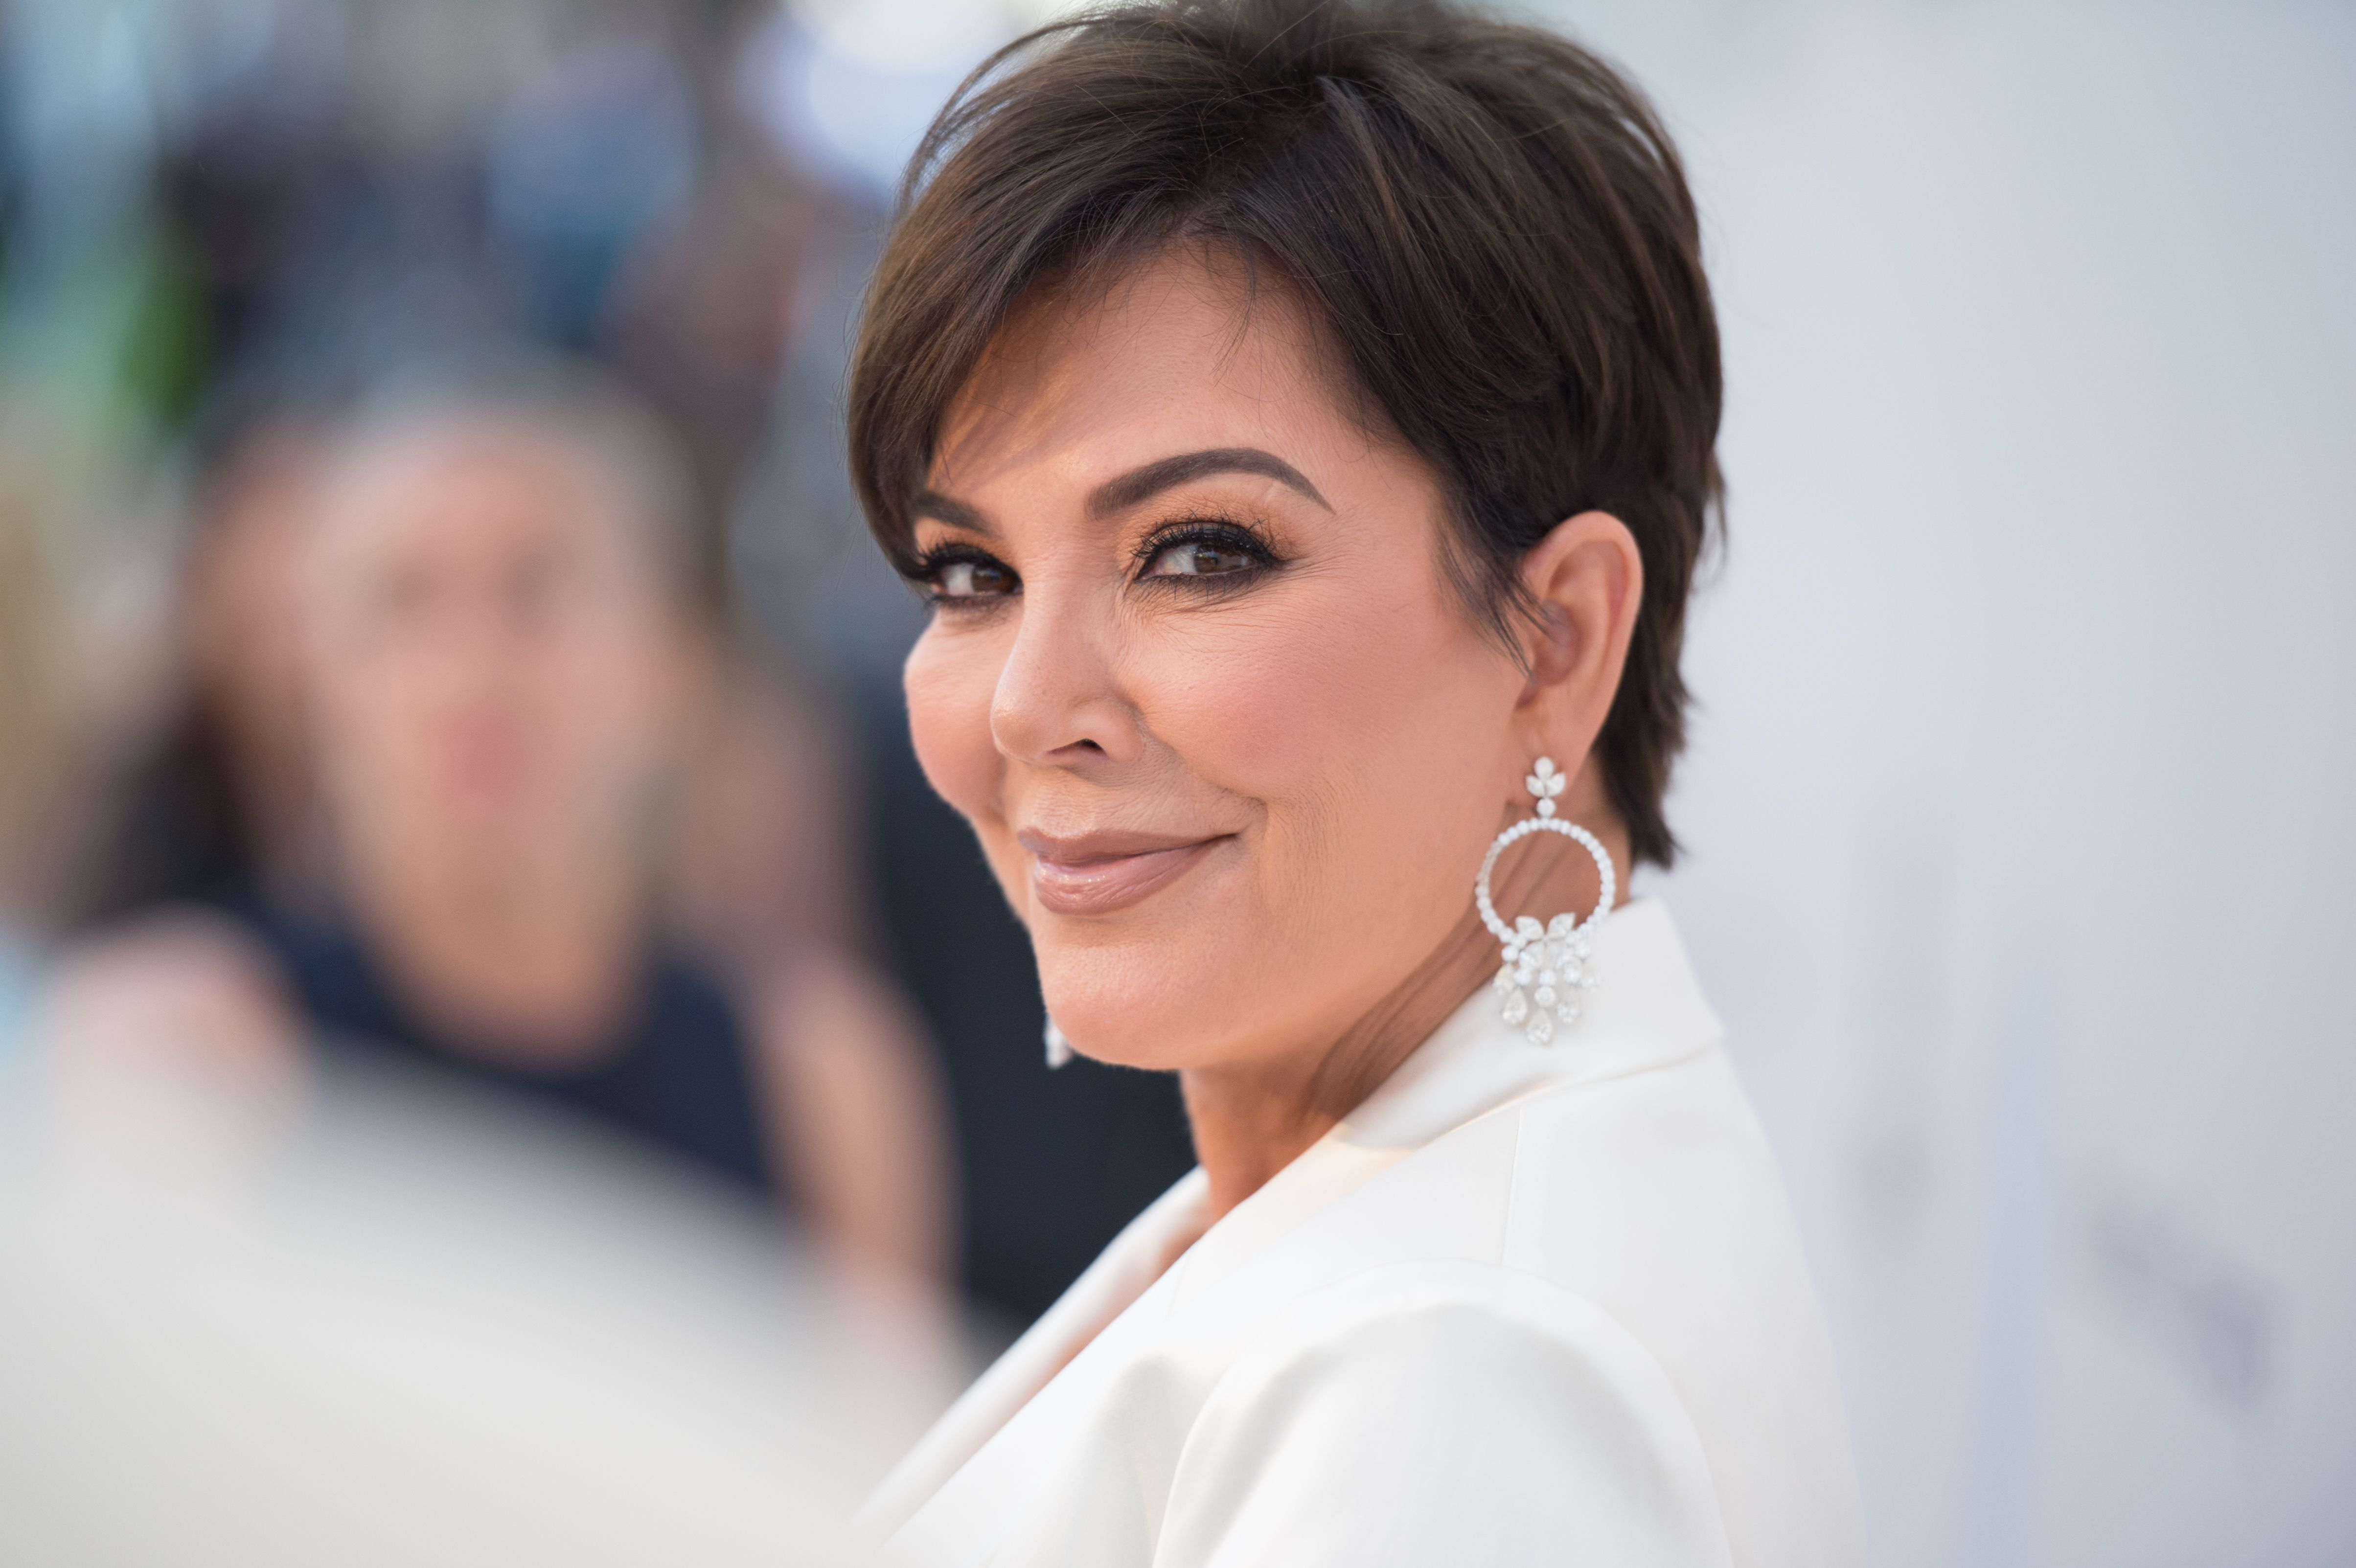 Kris Jenner in a white jacket